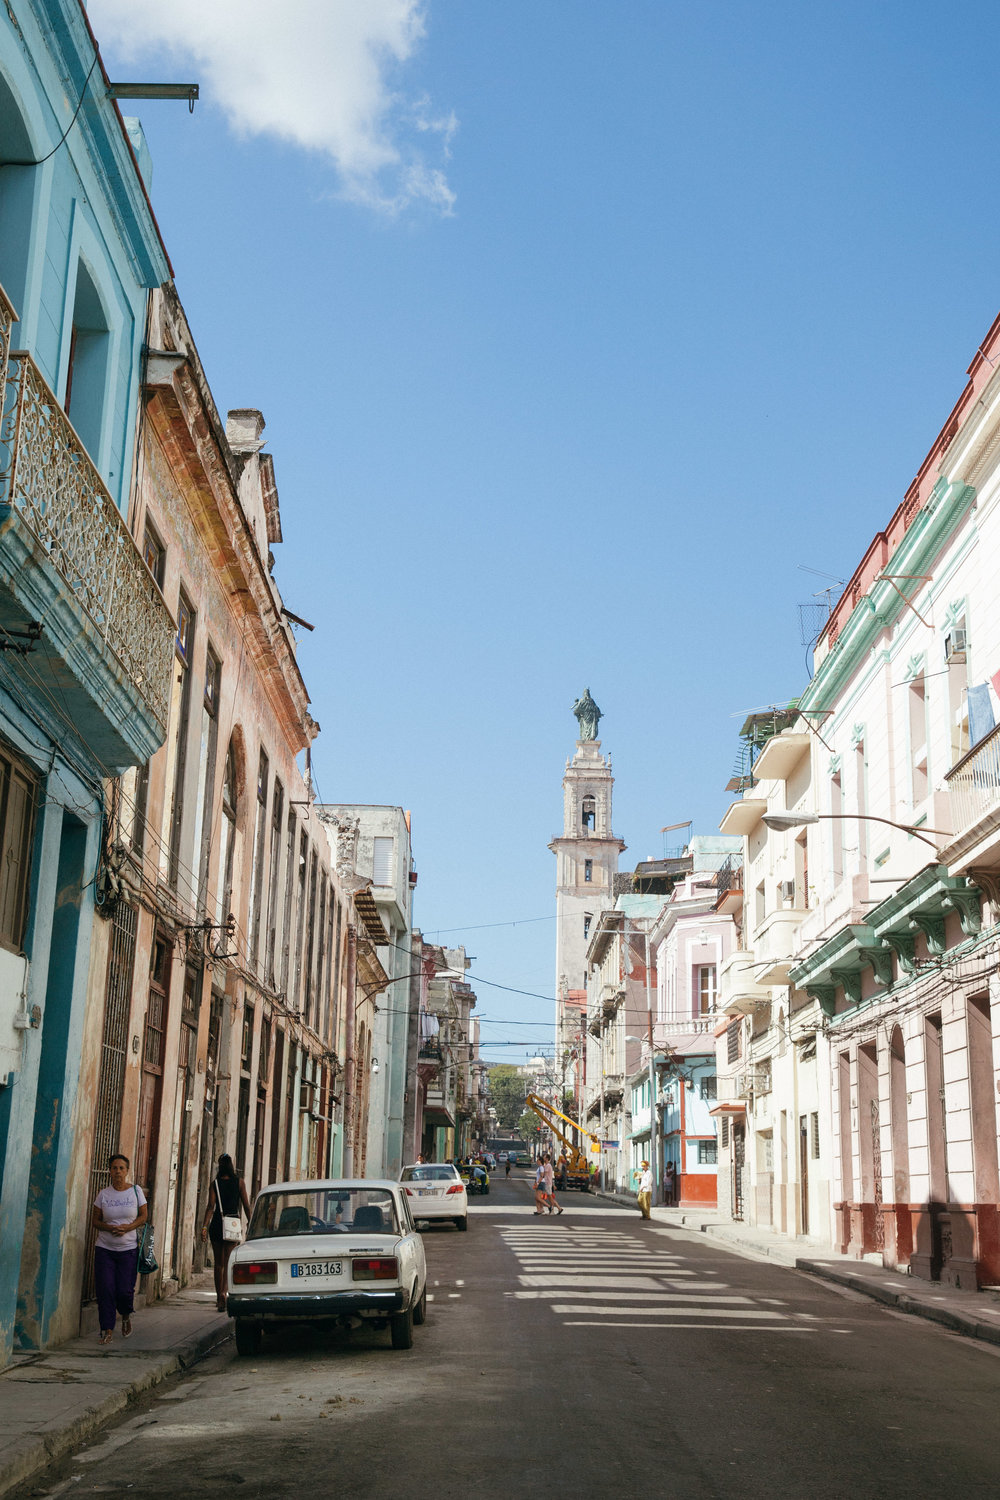 We stayed at a much cheaper apartment west of Habana Vieja, but still centrally located.